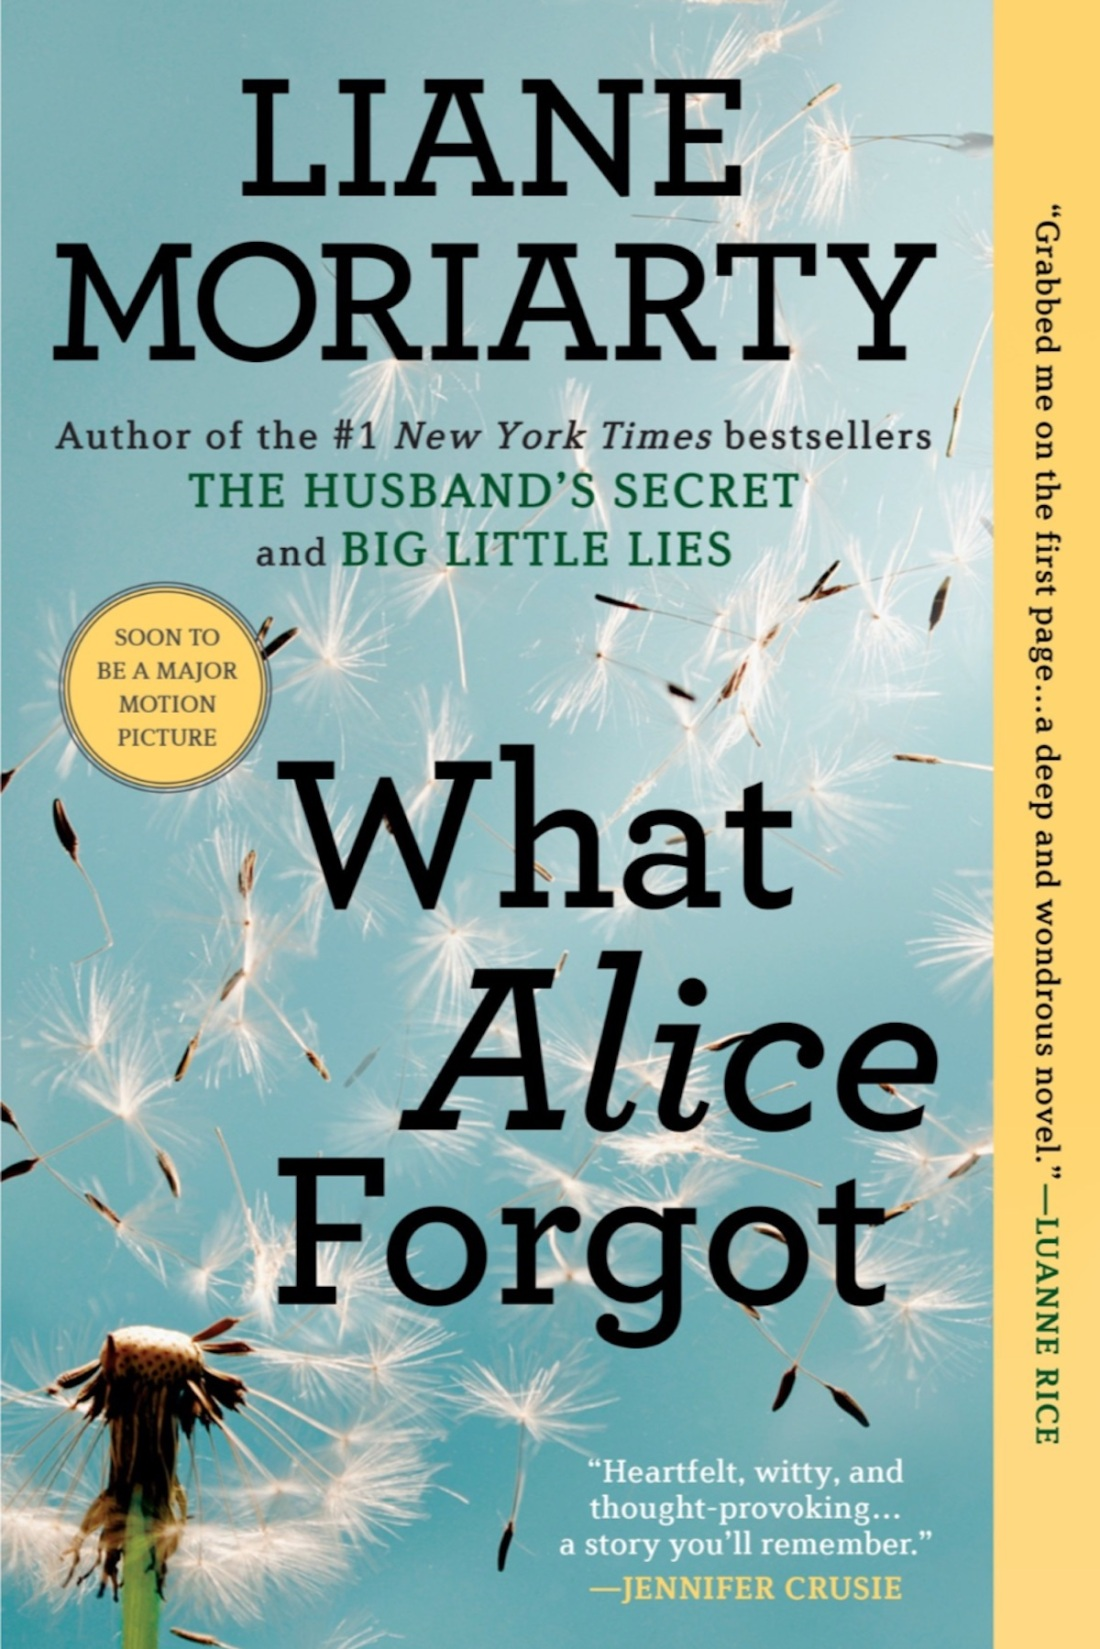 book cover to what alice forgot by liane moriarty